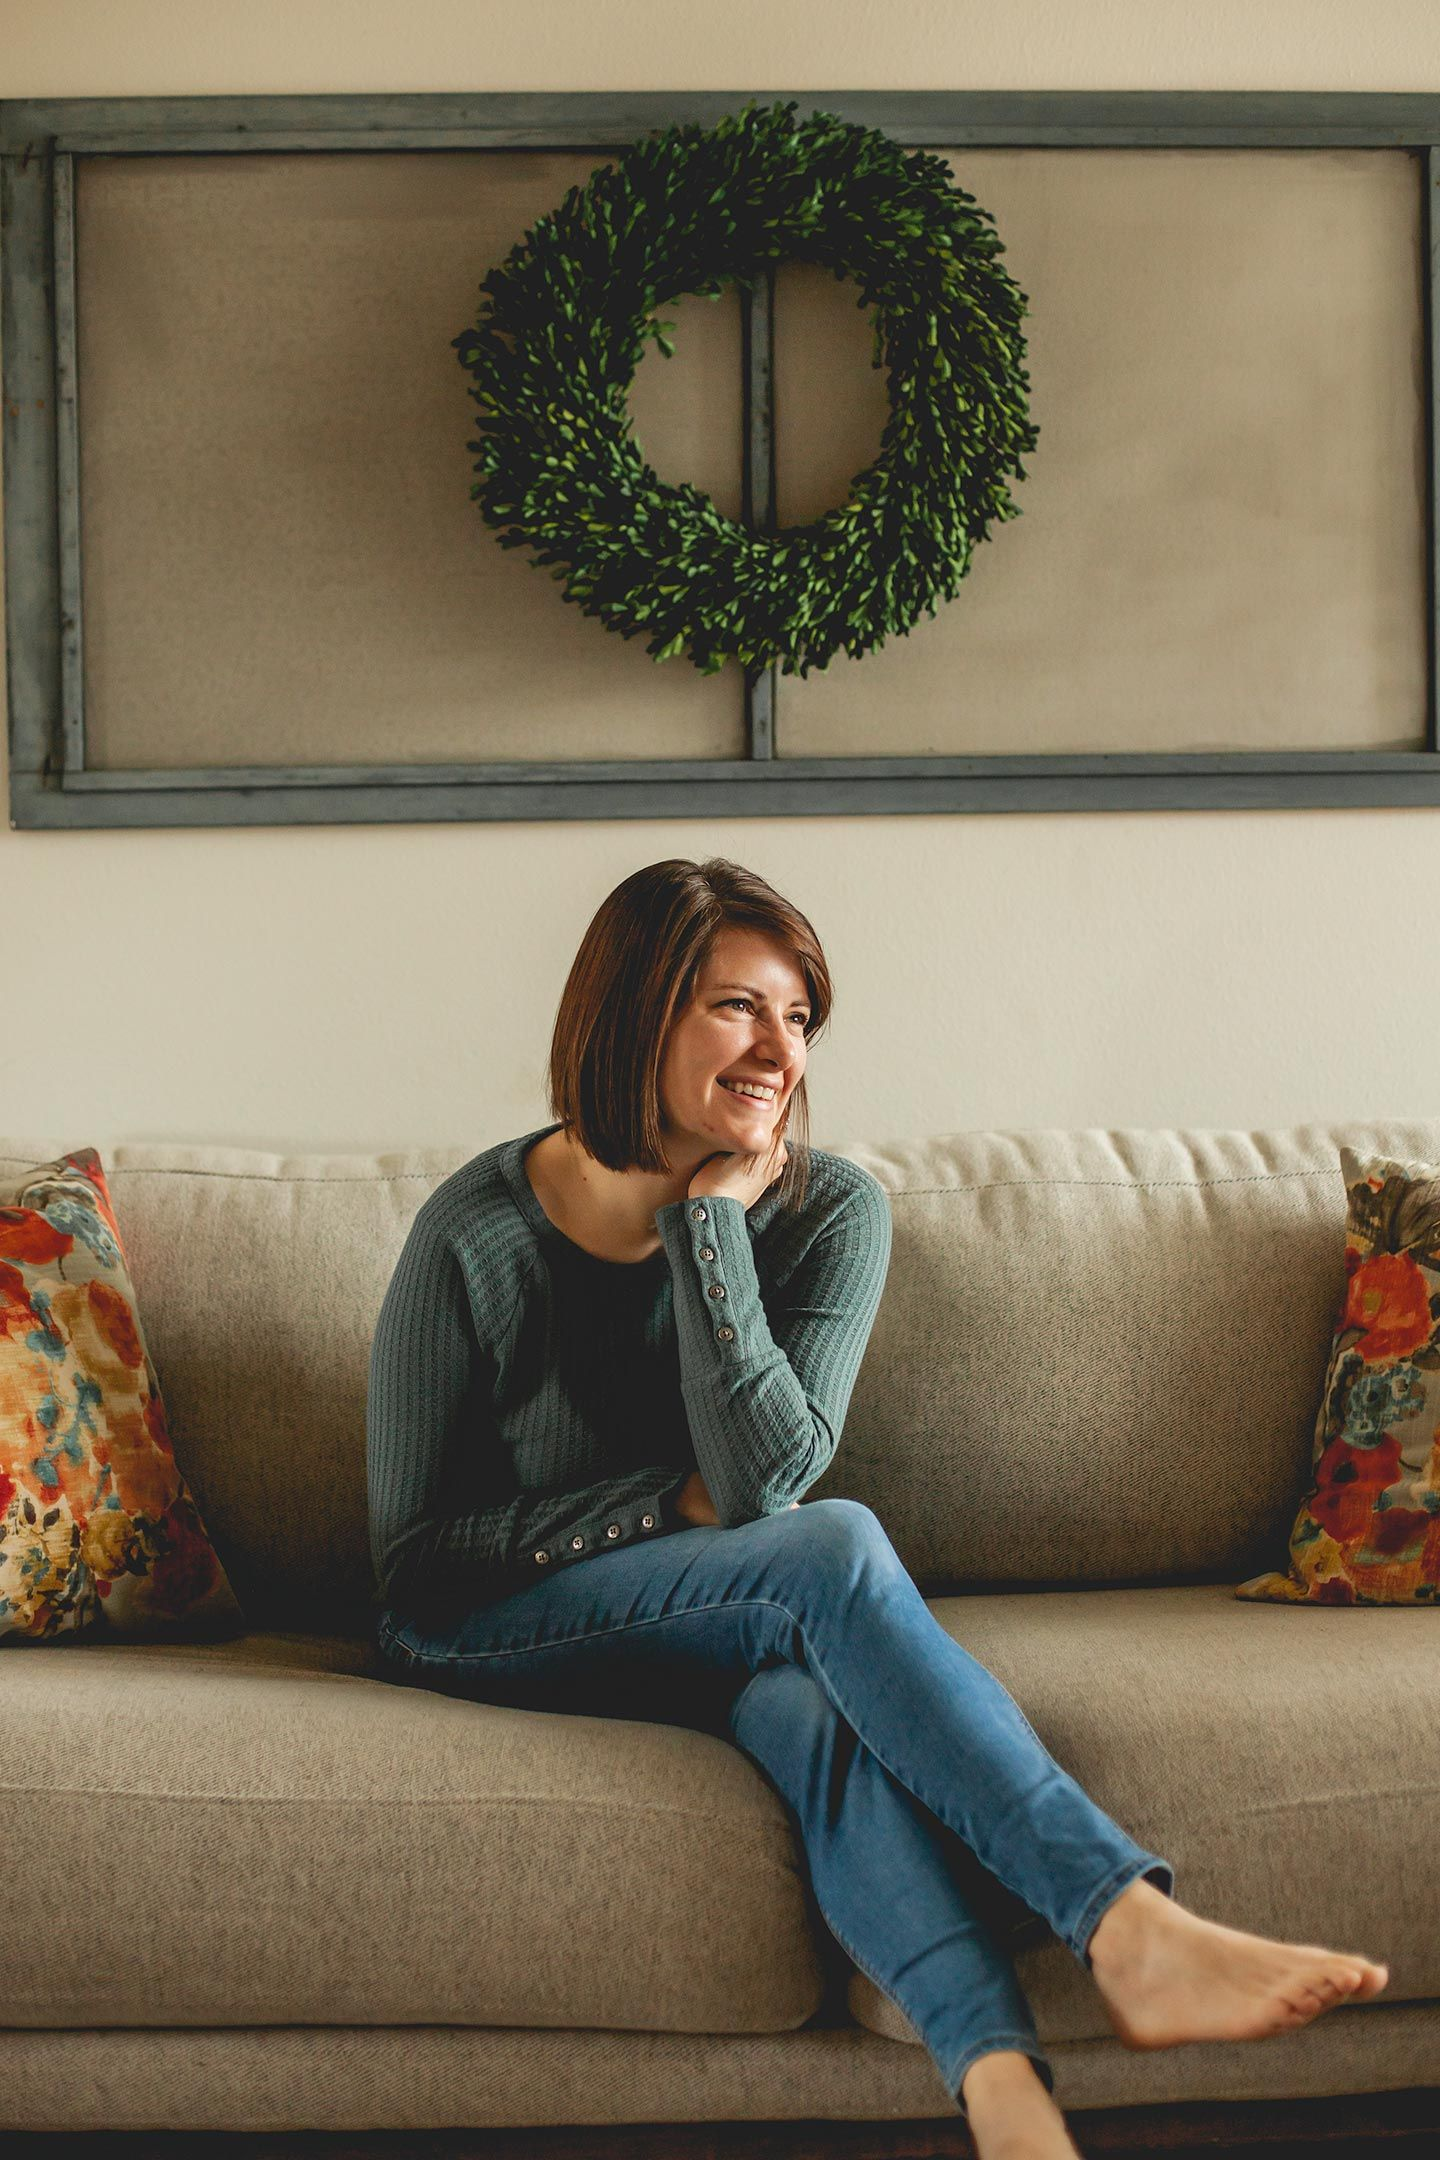 a woman sitting on her living room couch and smiling towards the natural light coming in her window